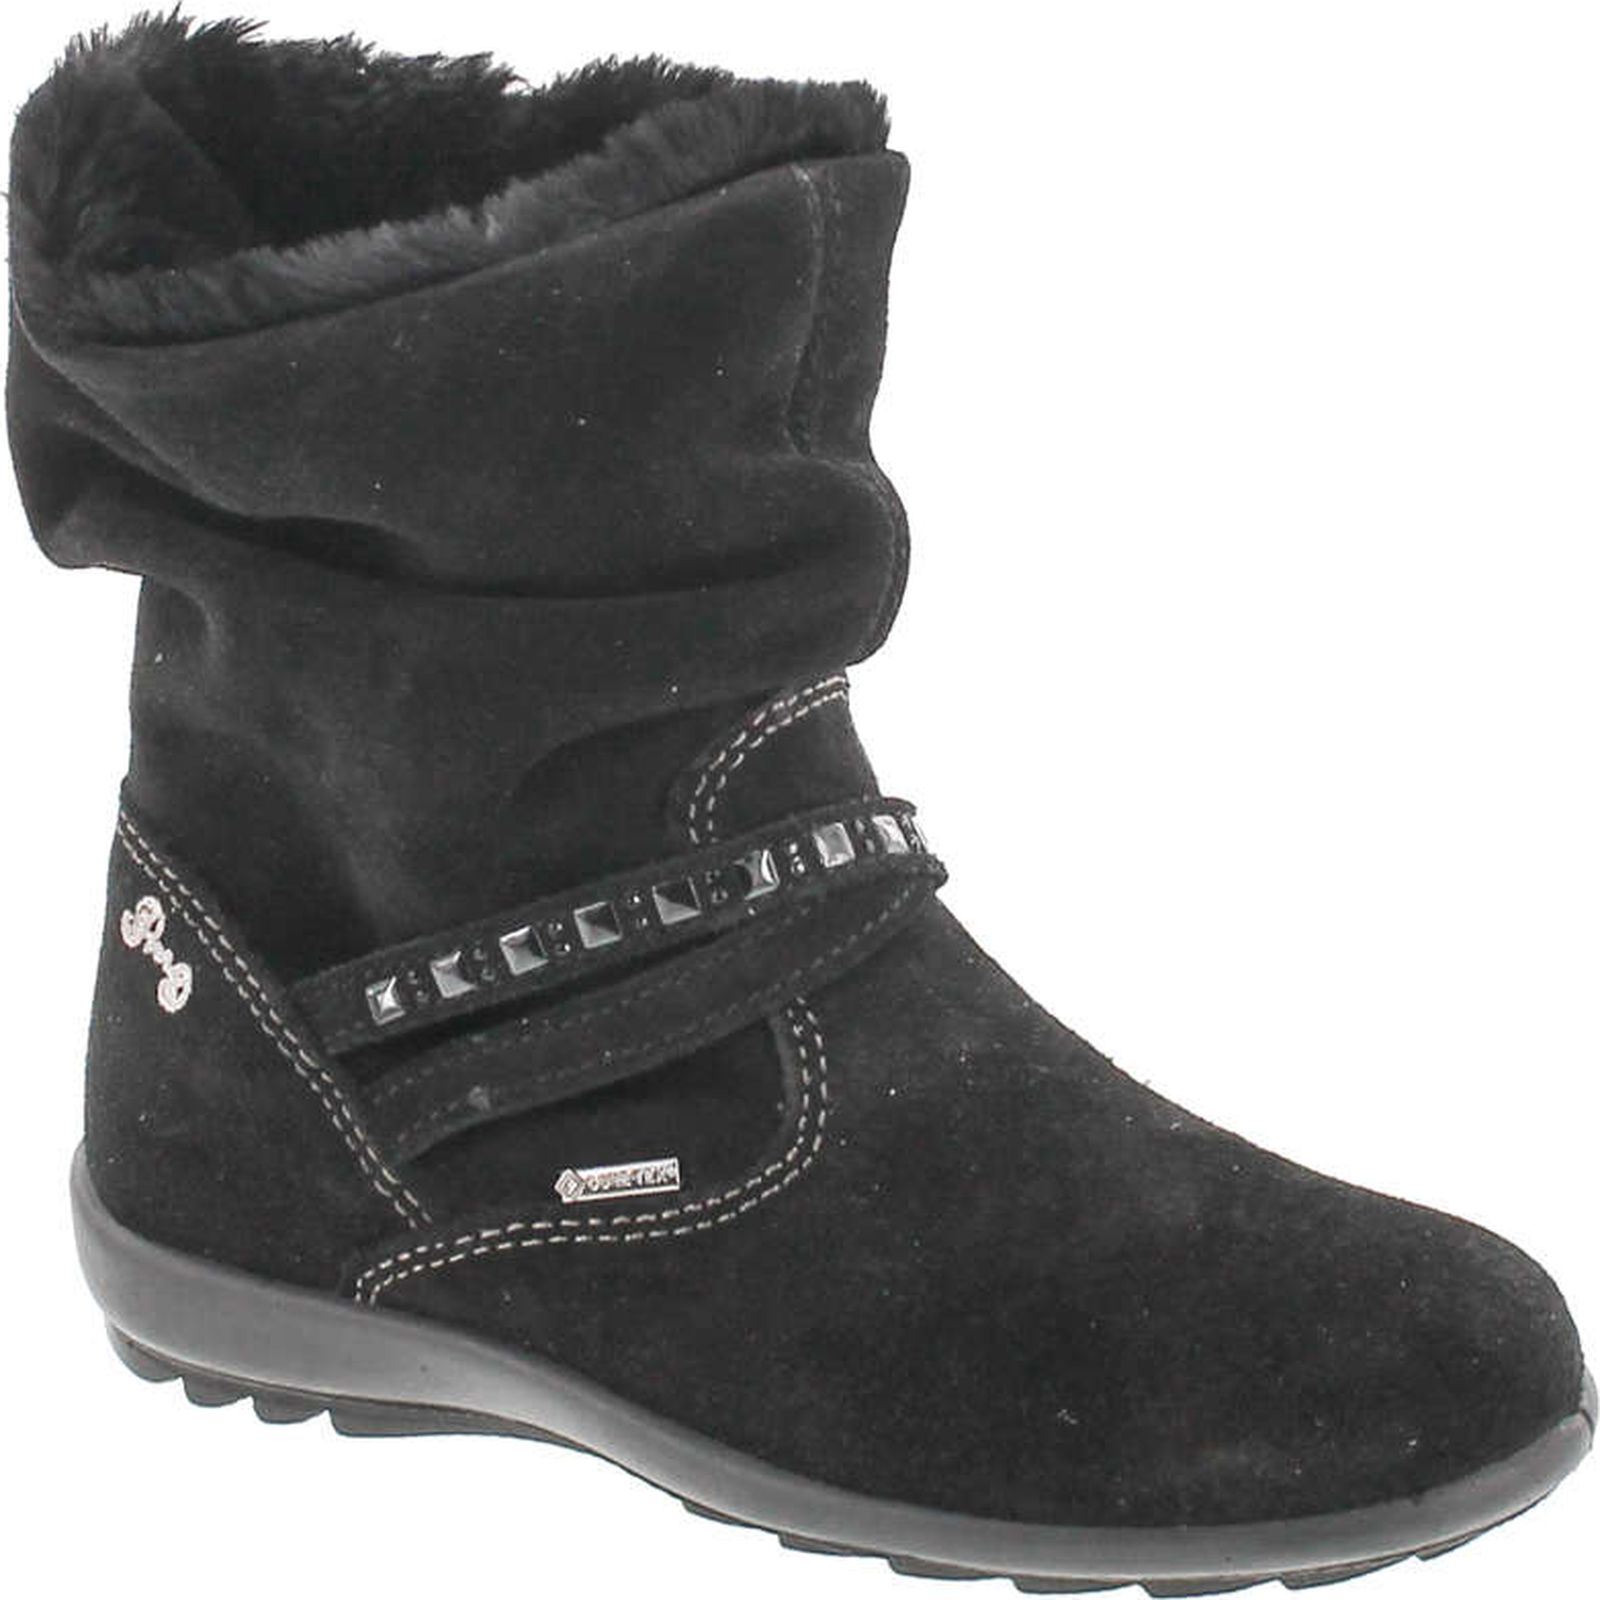 Primigi Girls 8571 Gore Tex Waterproof Winter Fashion Boots by Primigi